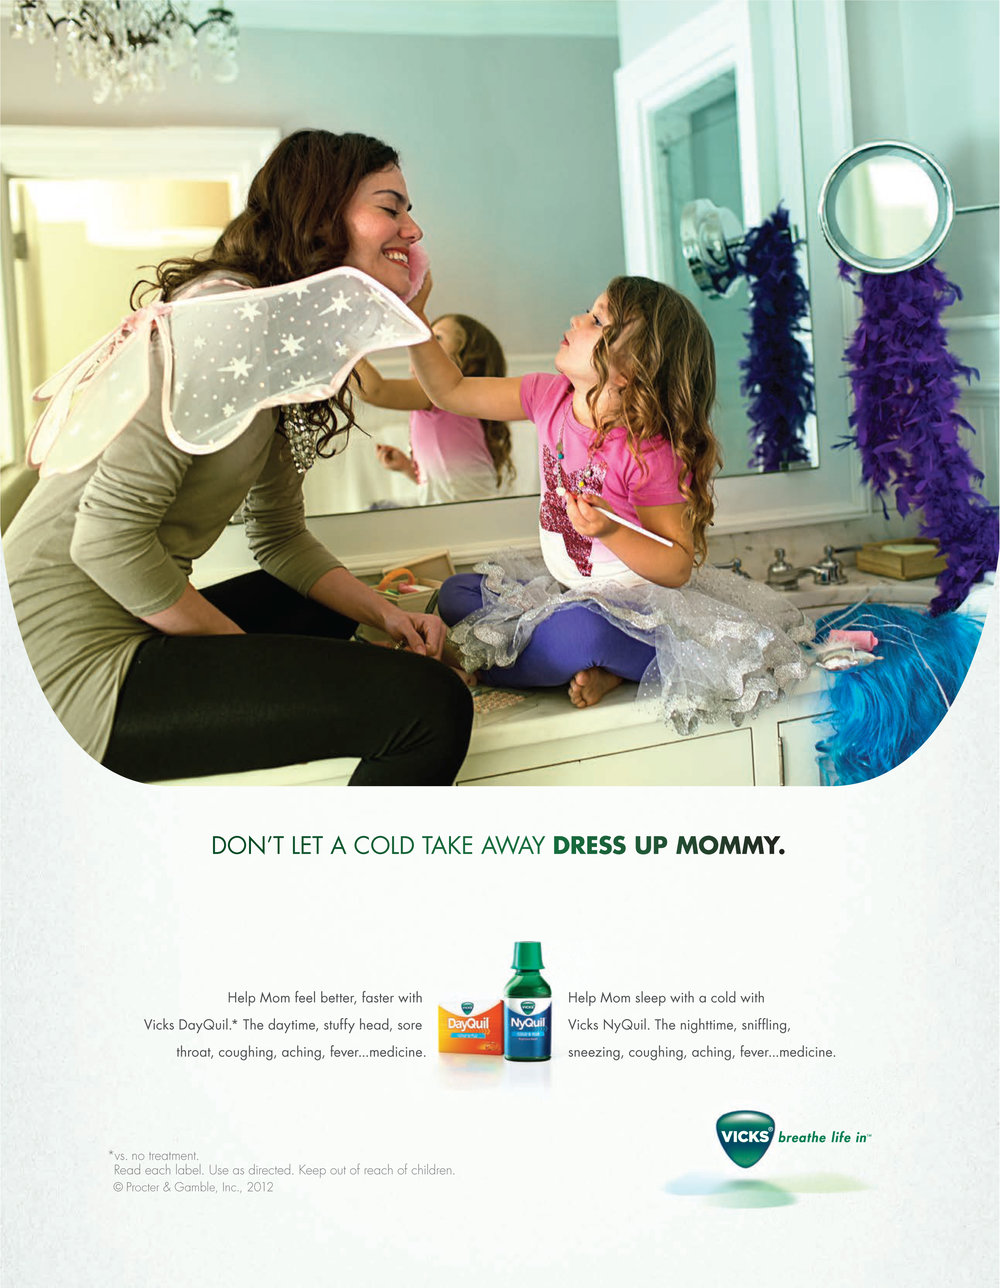 vicks ad_dress up mommy.jpg